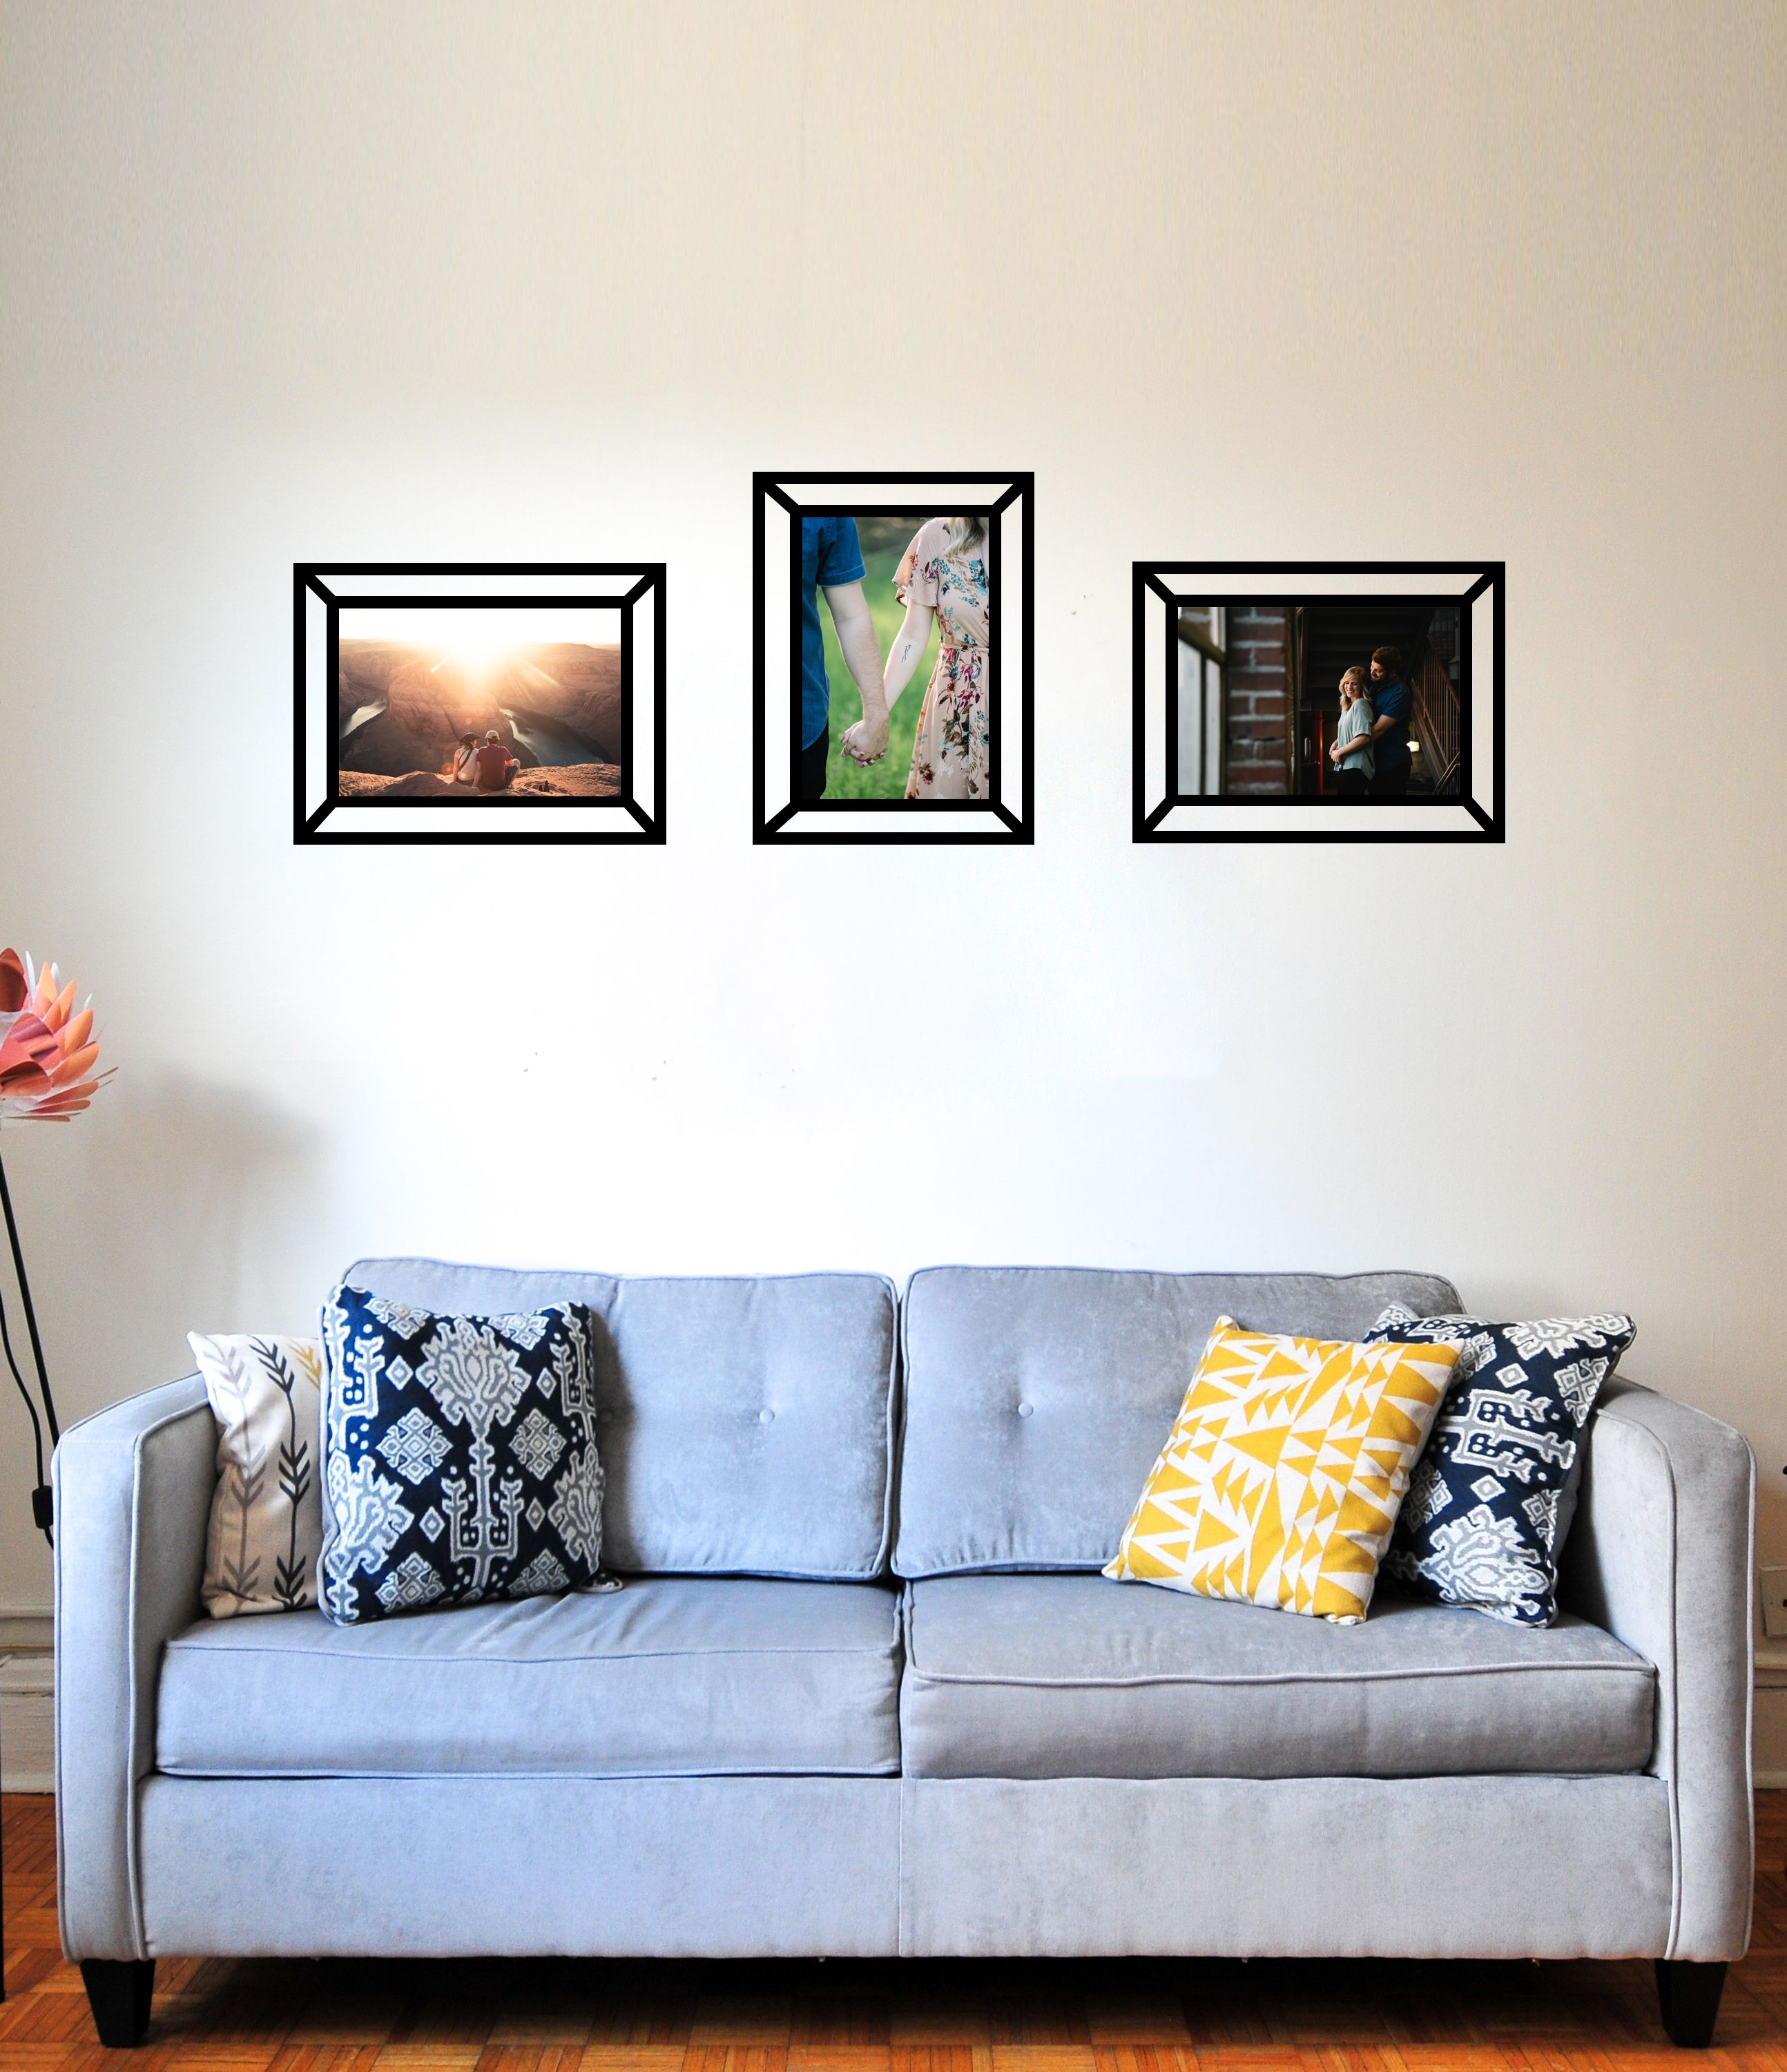 Vinyl Picture Frames Perfect For Any Space Home